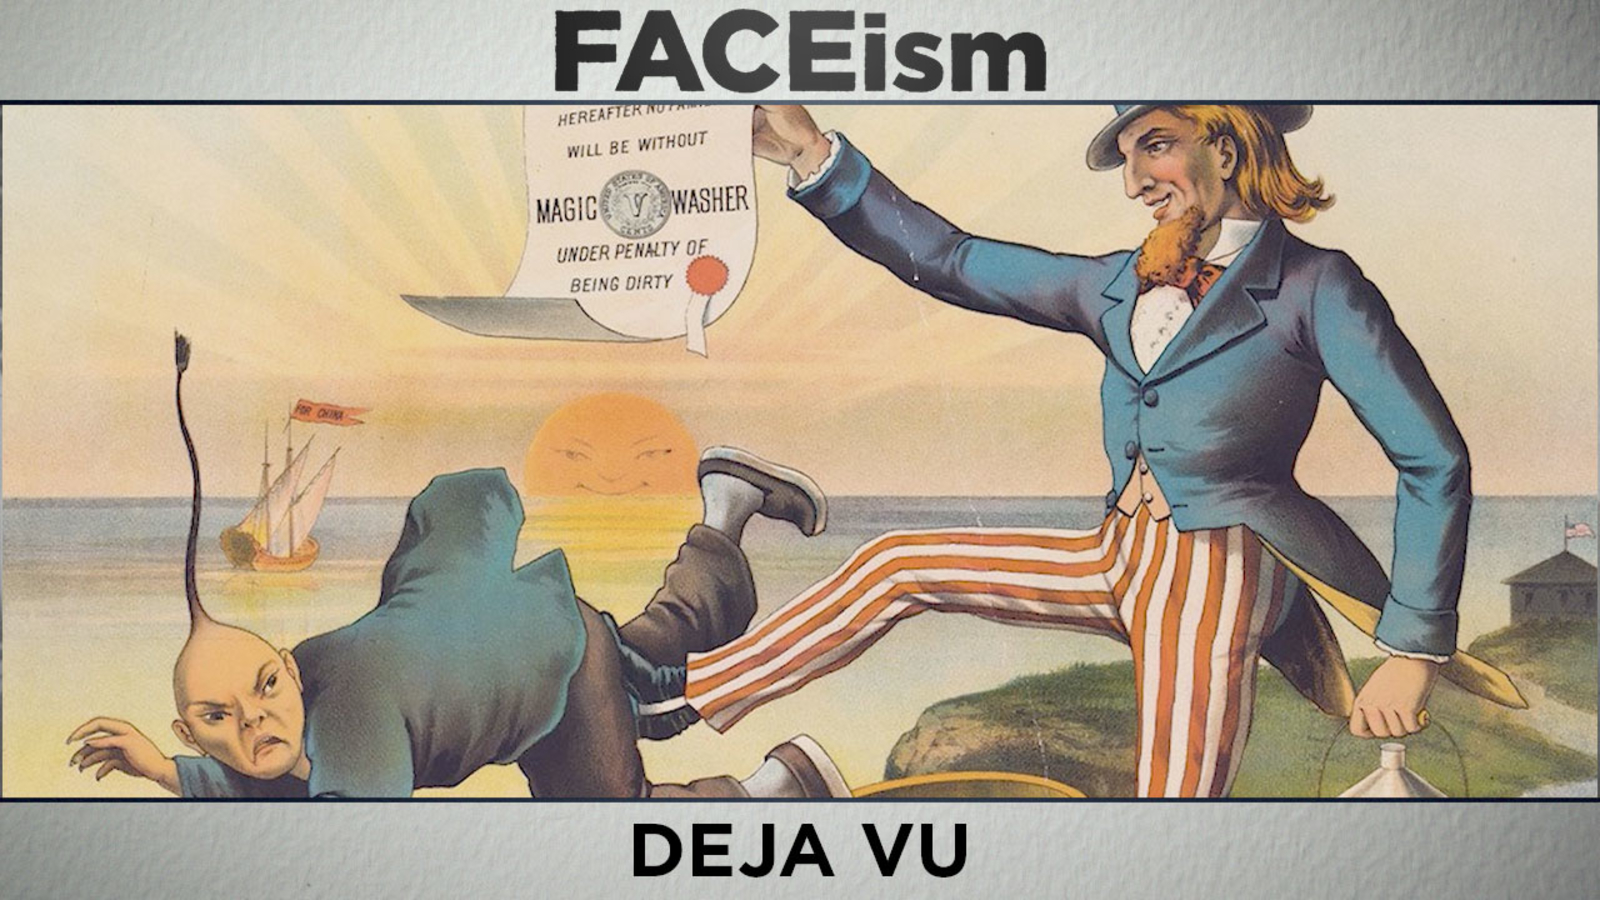 abc7.com: FACEism: How COVID-19 is resurfacing US history of racism against Asian Americans